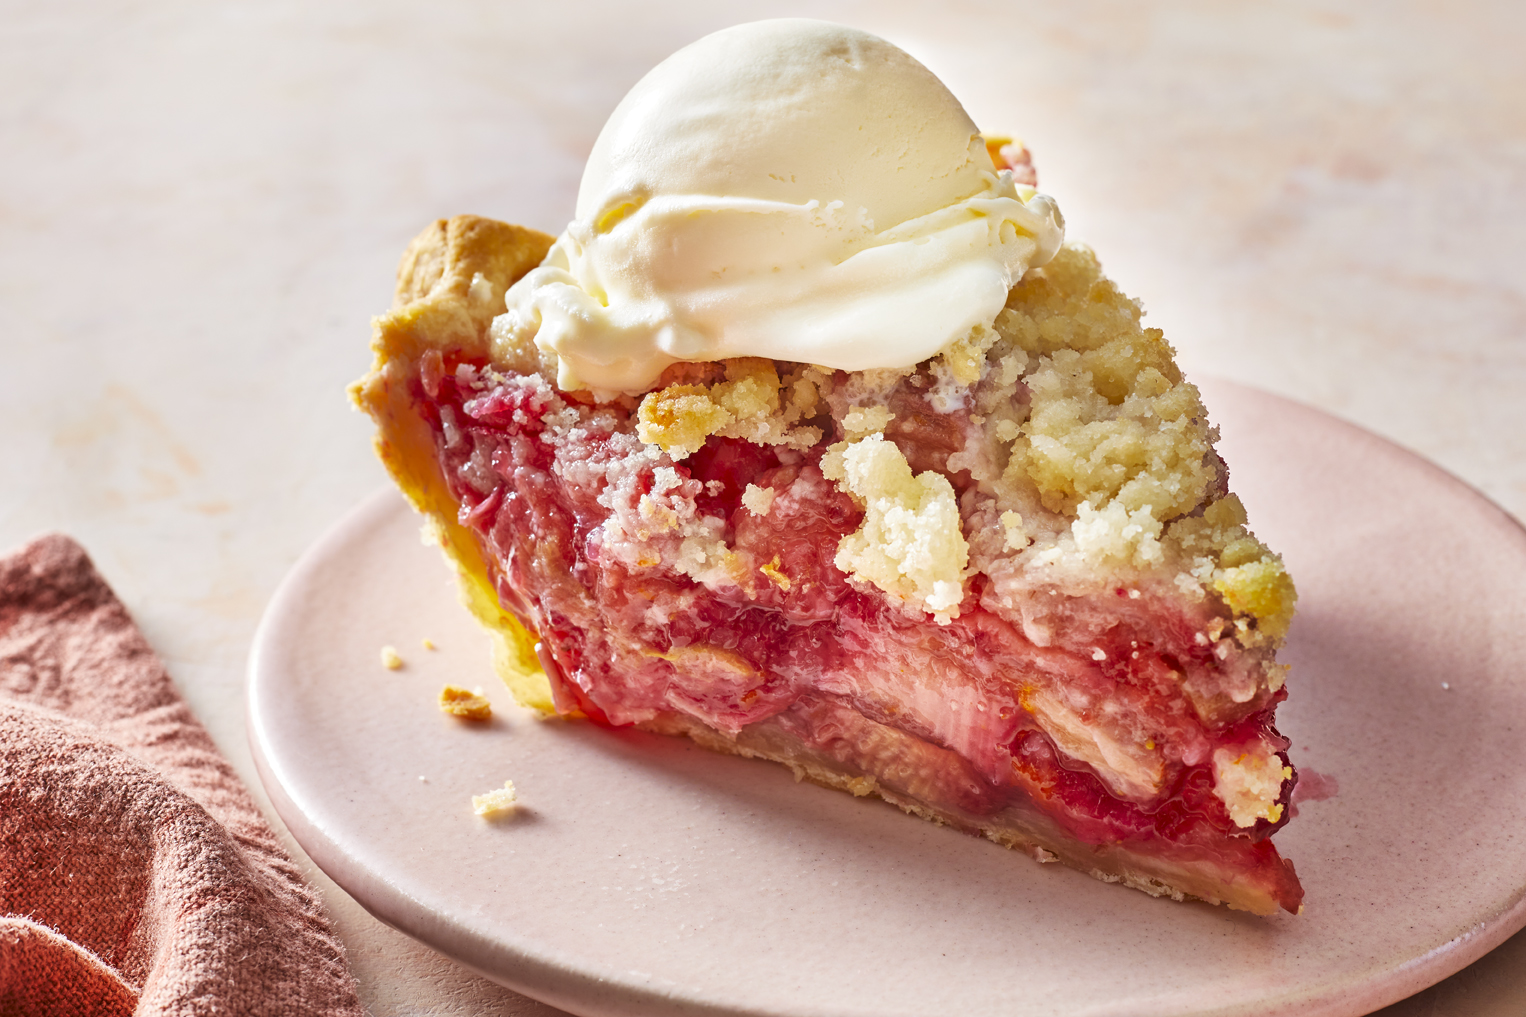 A single slice of strawberry rhubarb pie topped with a perfect scoop of vanilla ice cream